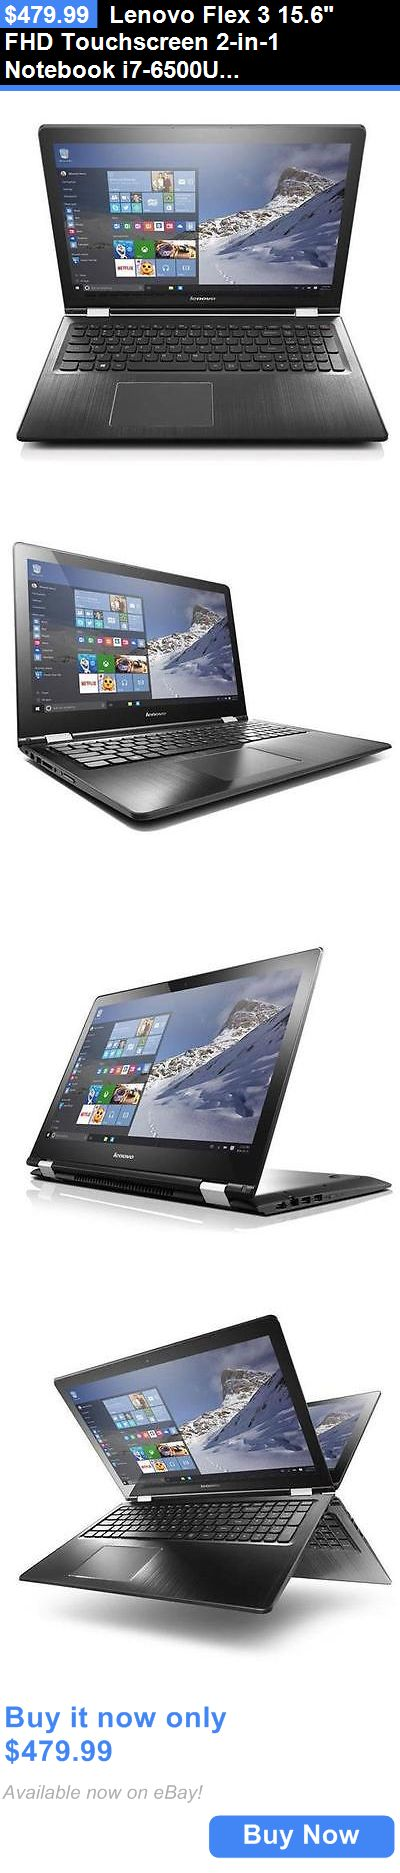 Computers Tablets Networking: Lenovo Flex 3 15.6 Fhd Touchscreen 2-In-1 Notebook I7-6500U 8Gb Ram 128Gb Ssd BUY IT NOW ONLY: $479.99